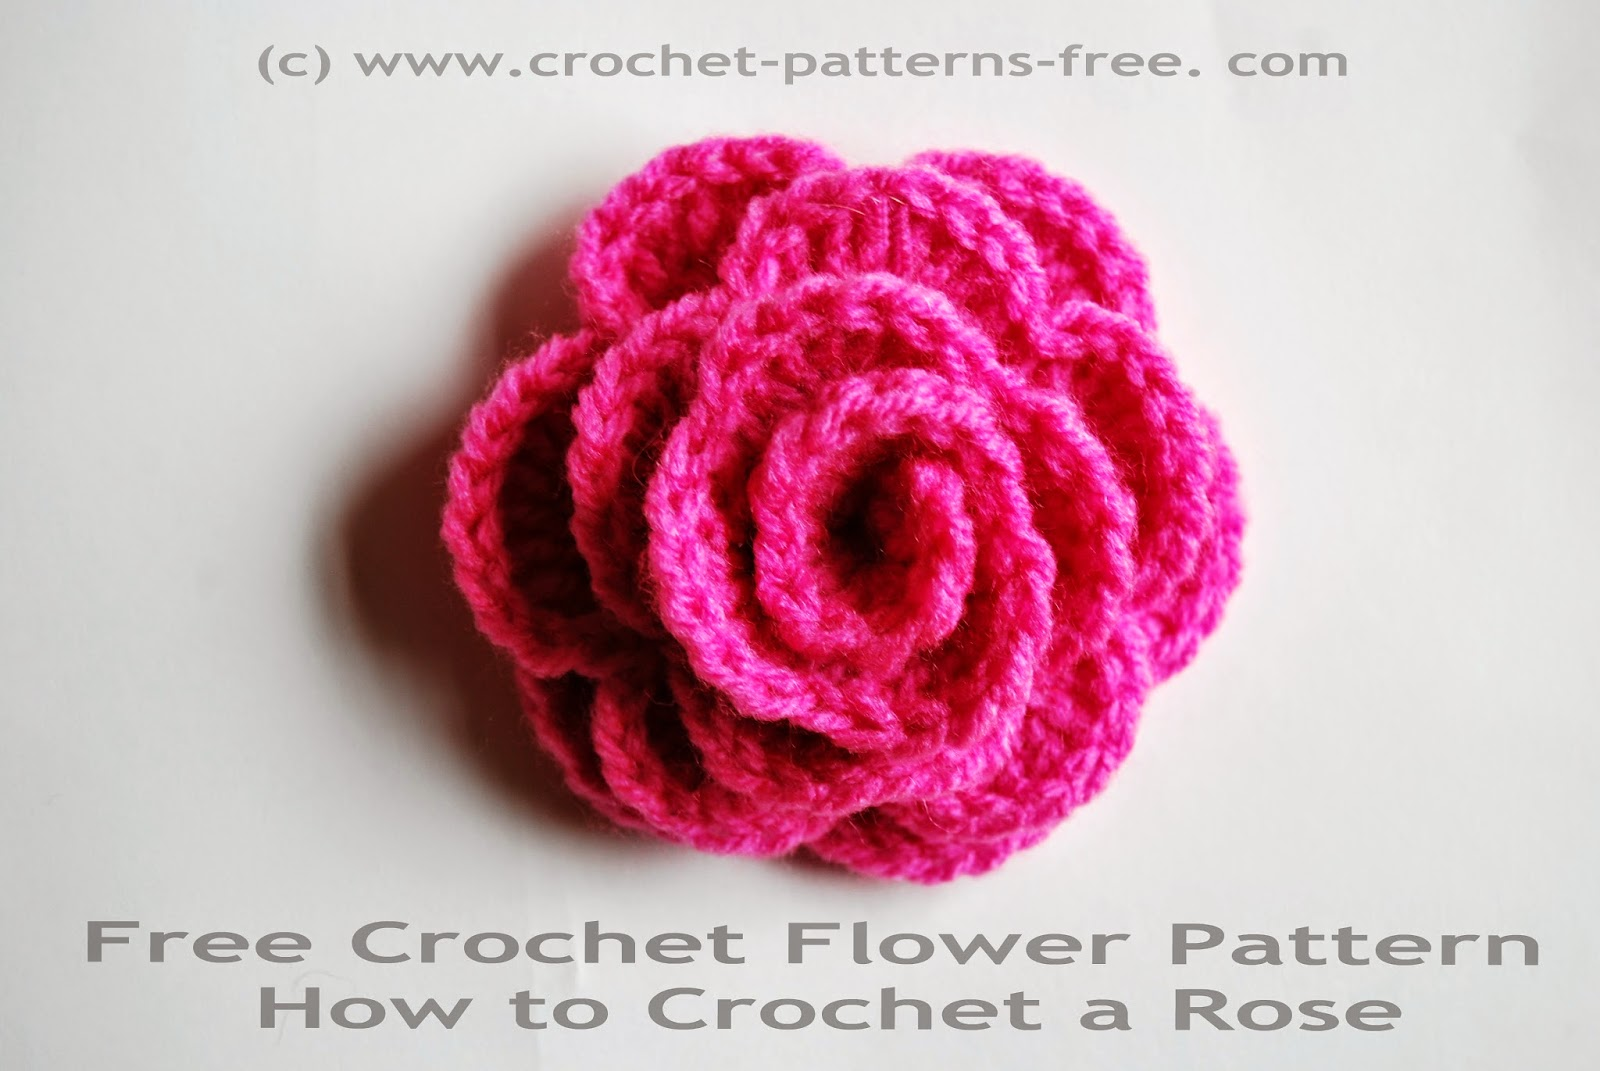 Crochet Rose Pattern : Crochet Flower Pattern How to crochet a rose Free Crochet Patterns ...